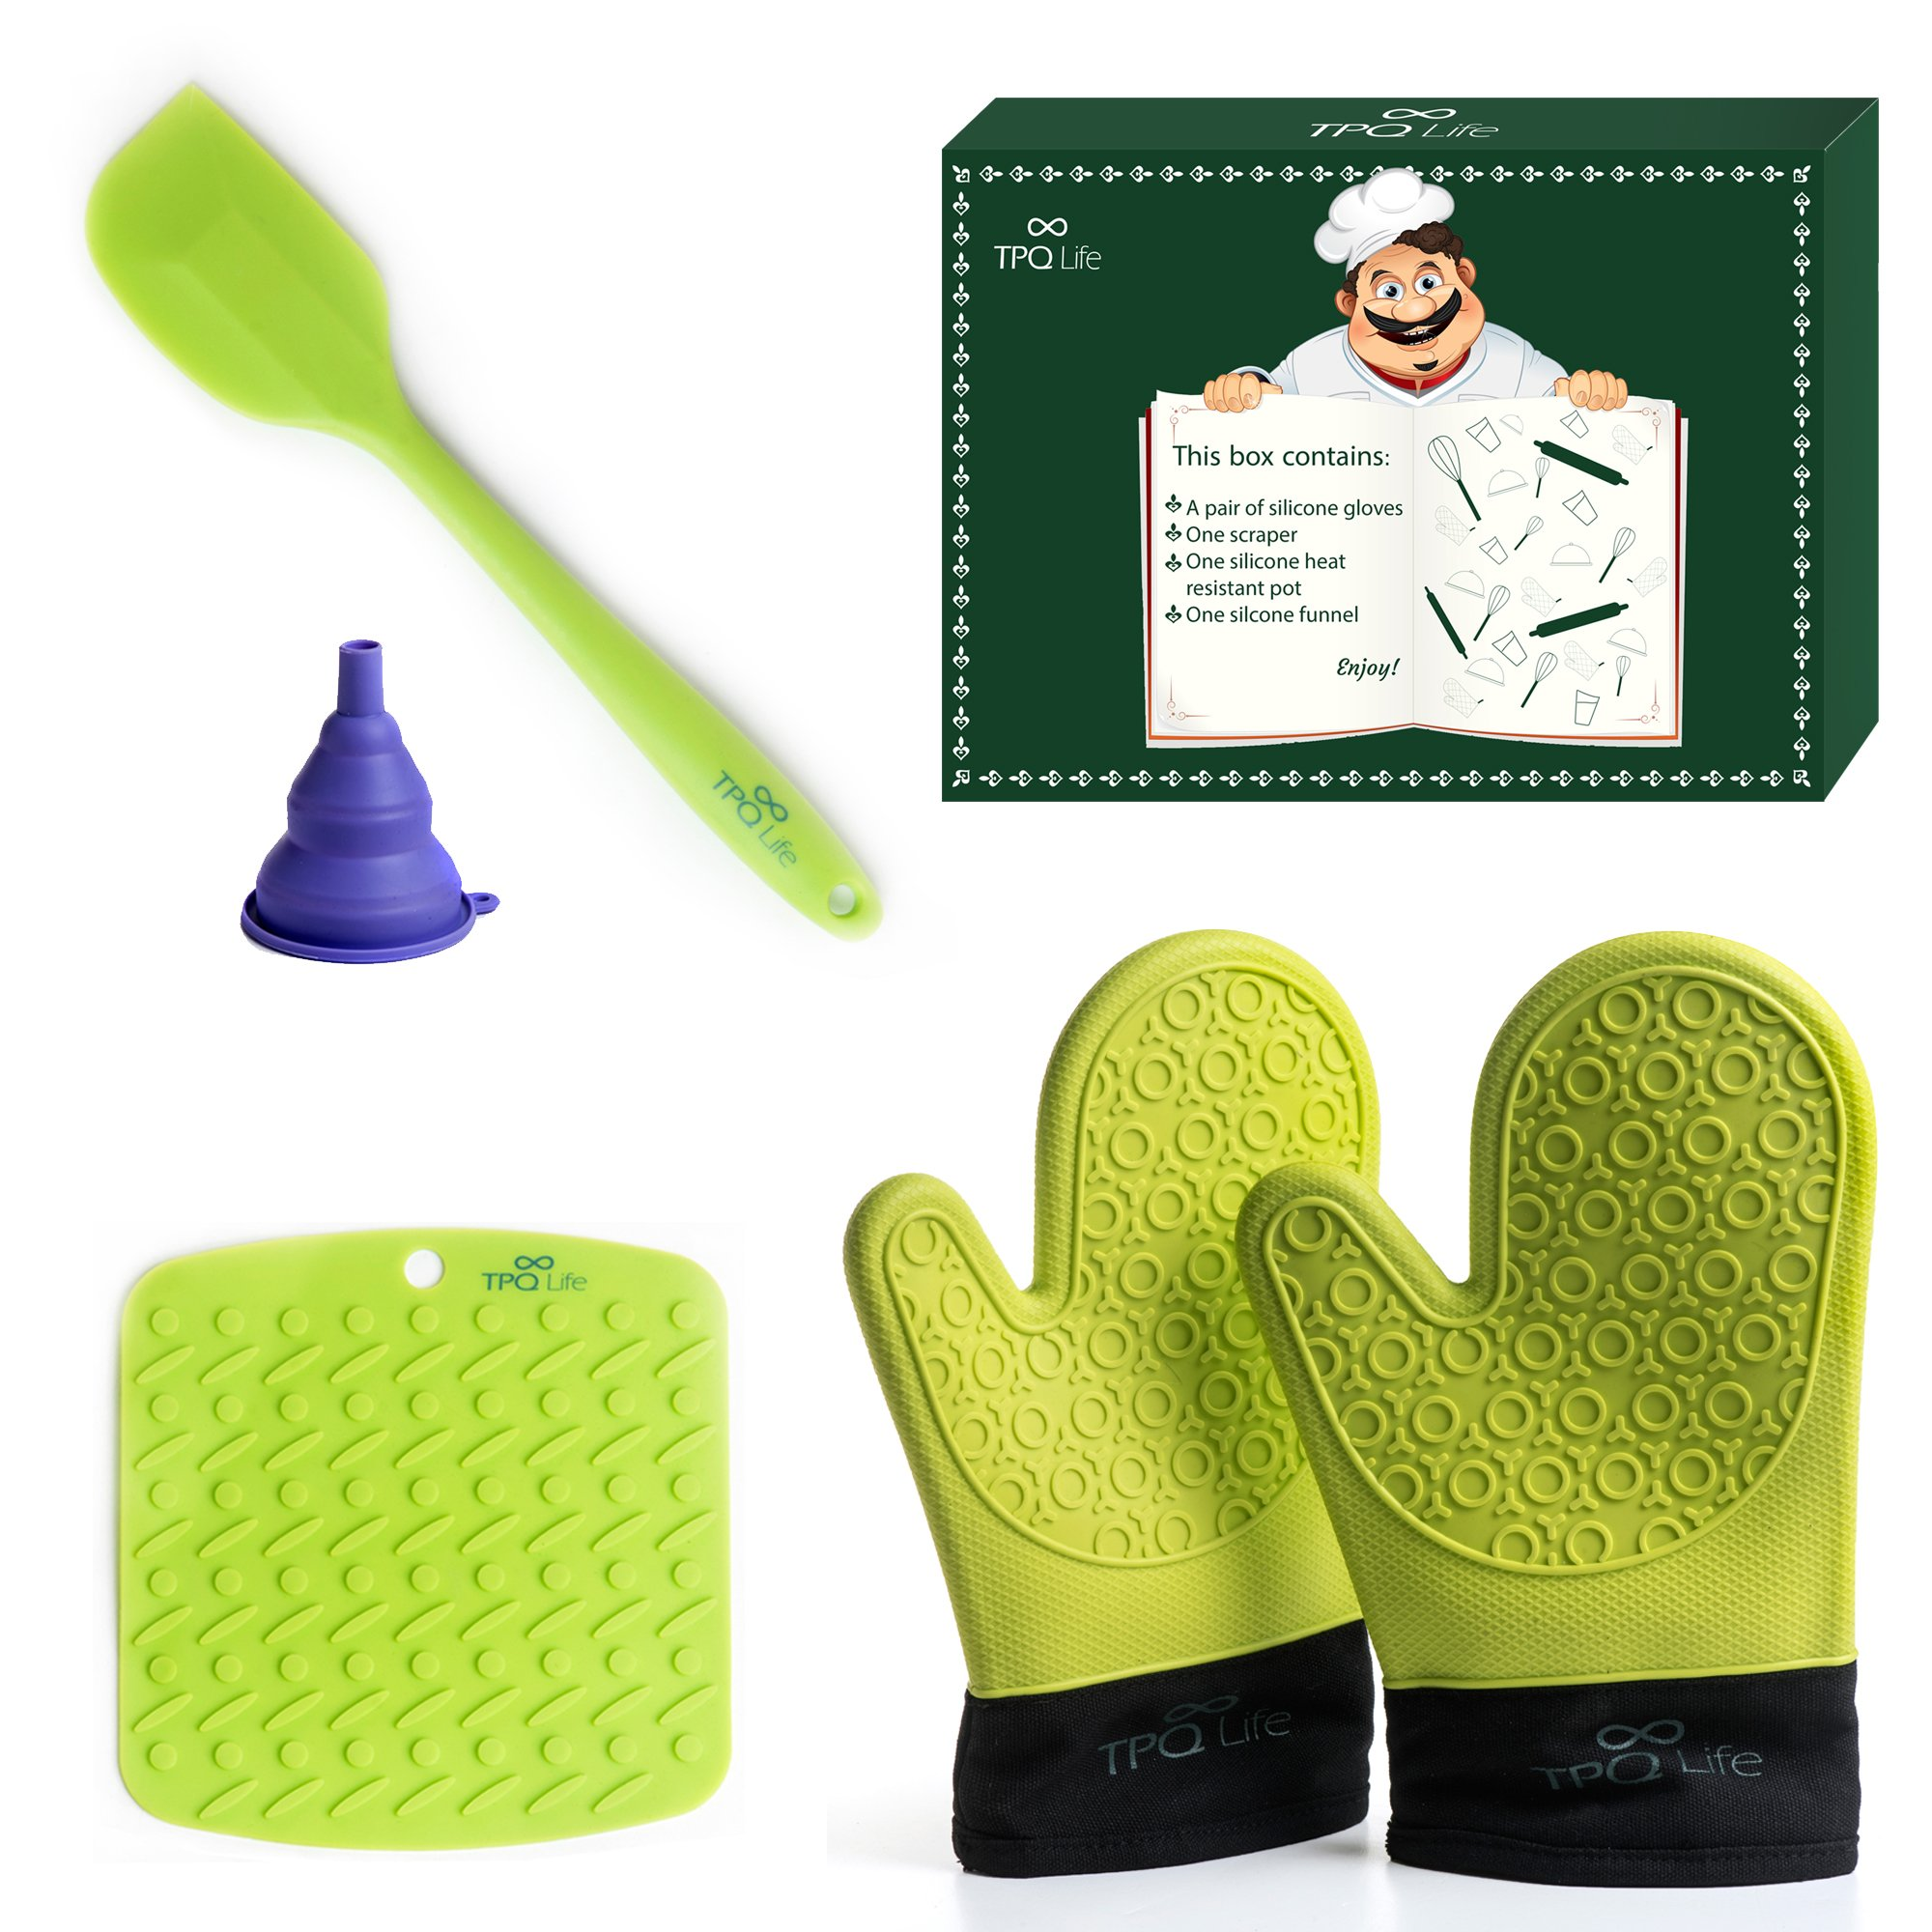 Silicone Oven mitts Pair, Placemat & Spatula Set - 5 Piece Kitchen Ensemble - Top Quality Heat Resistant Non-Slip Oven Mitts, Table/Trivet Mat & Scraper (Green) - BONUS Silicone Funnel by TPQ Life